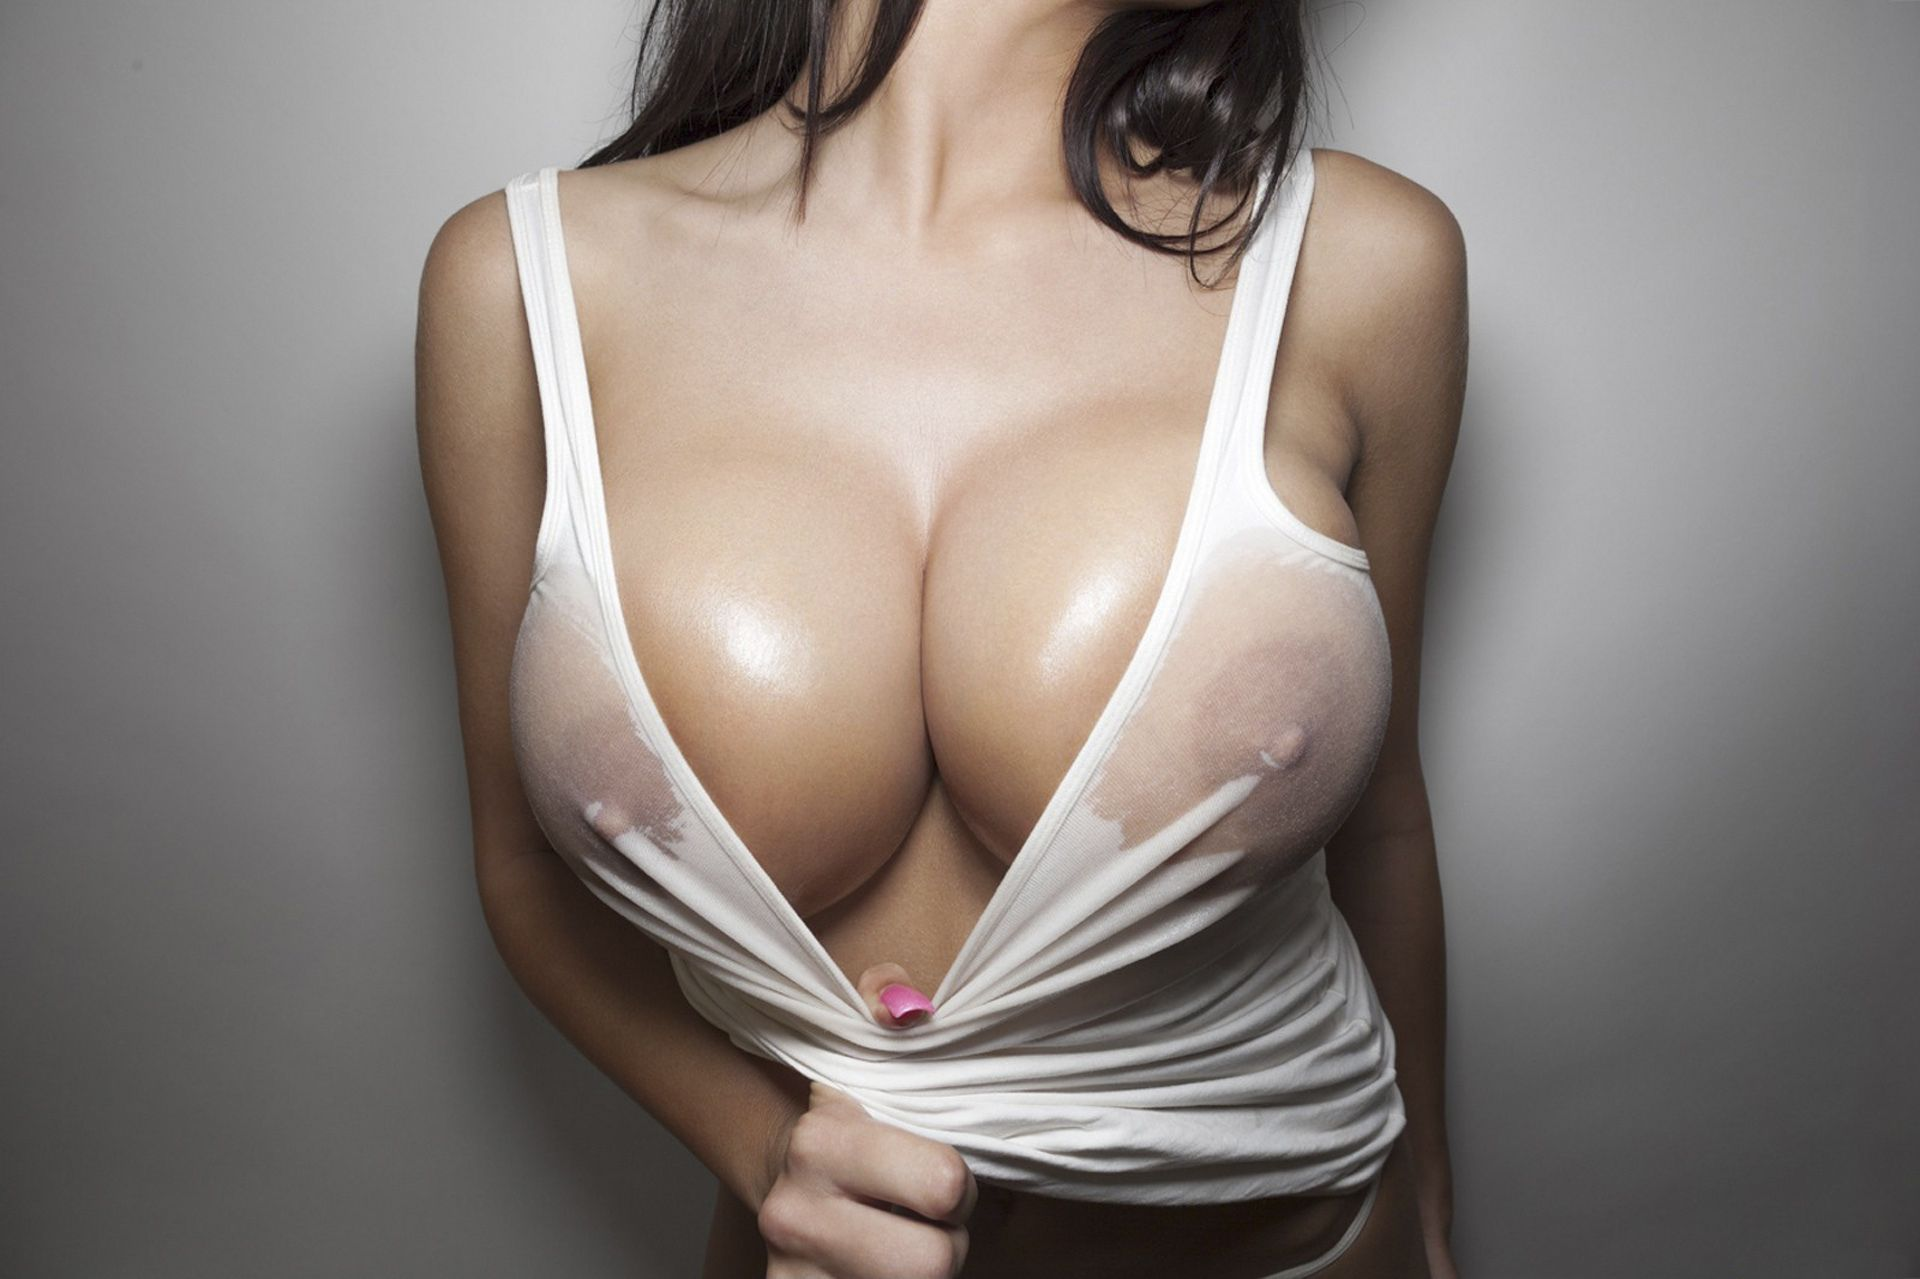 Big boobs wallpapers Geile Sau!!!!!